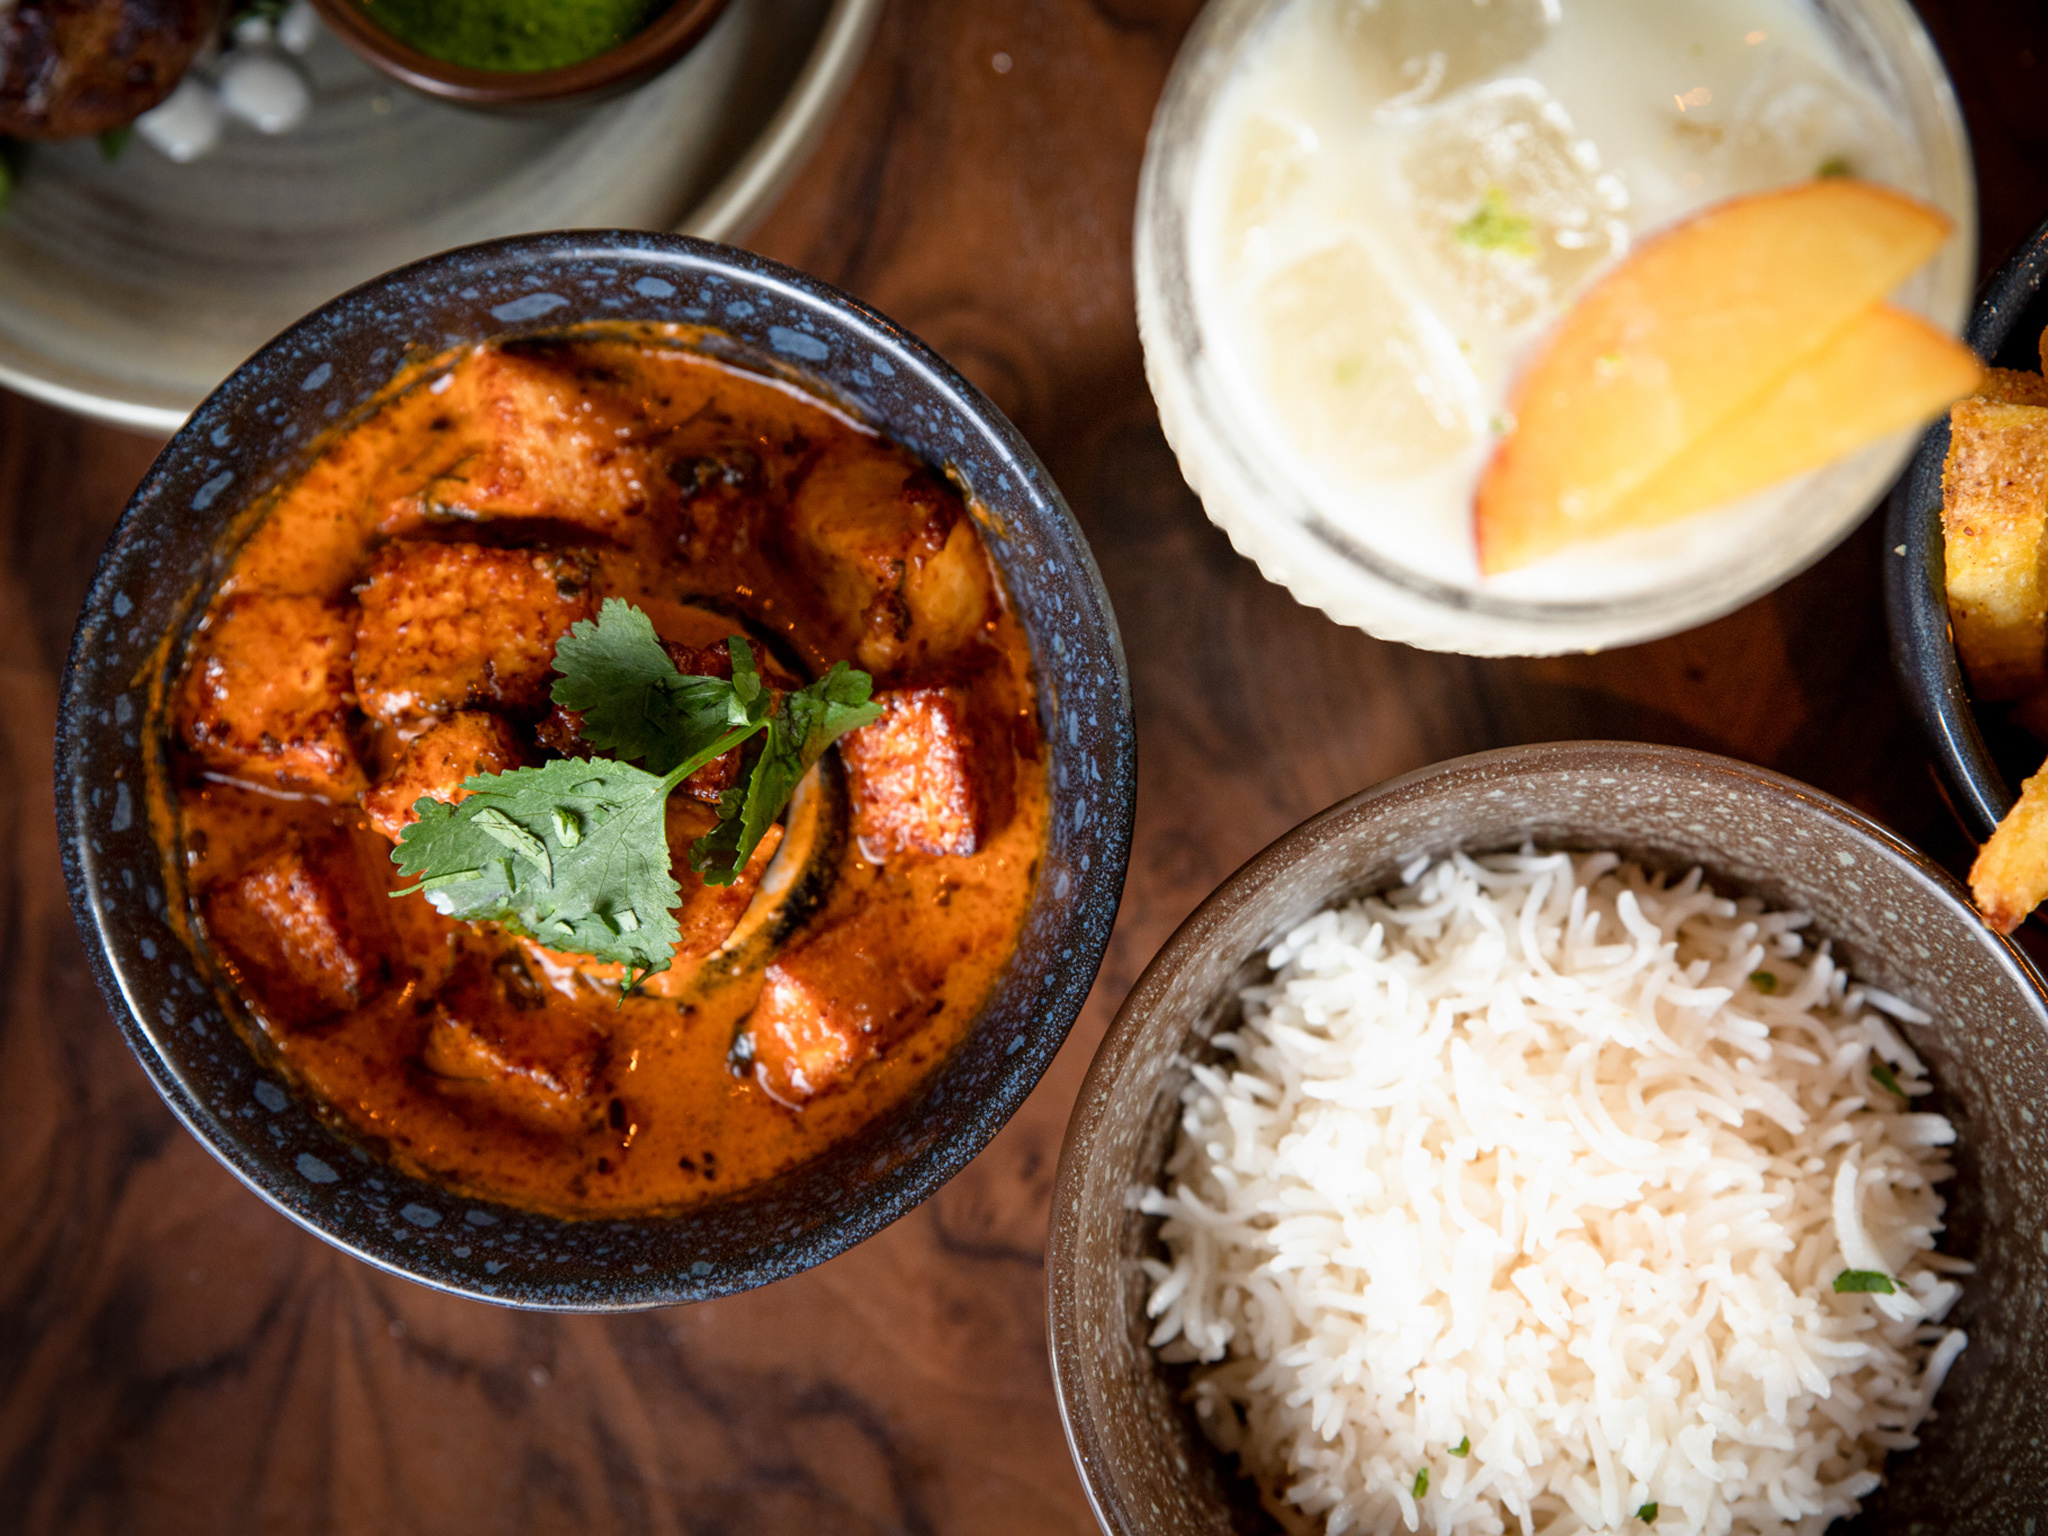 A paneer makhni at Doolally curry house in Dublin